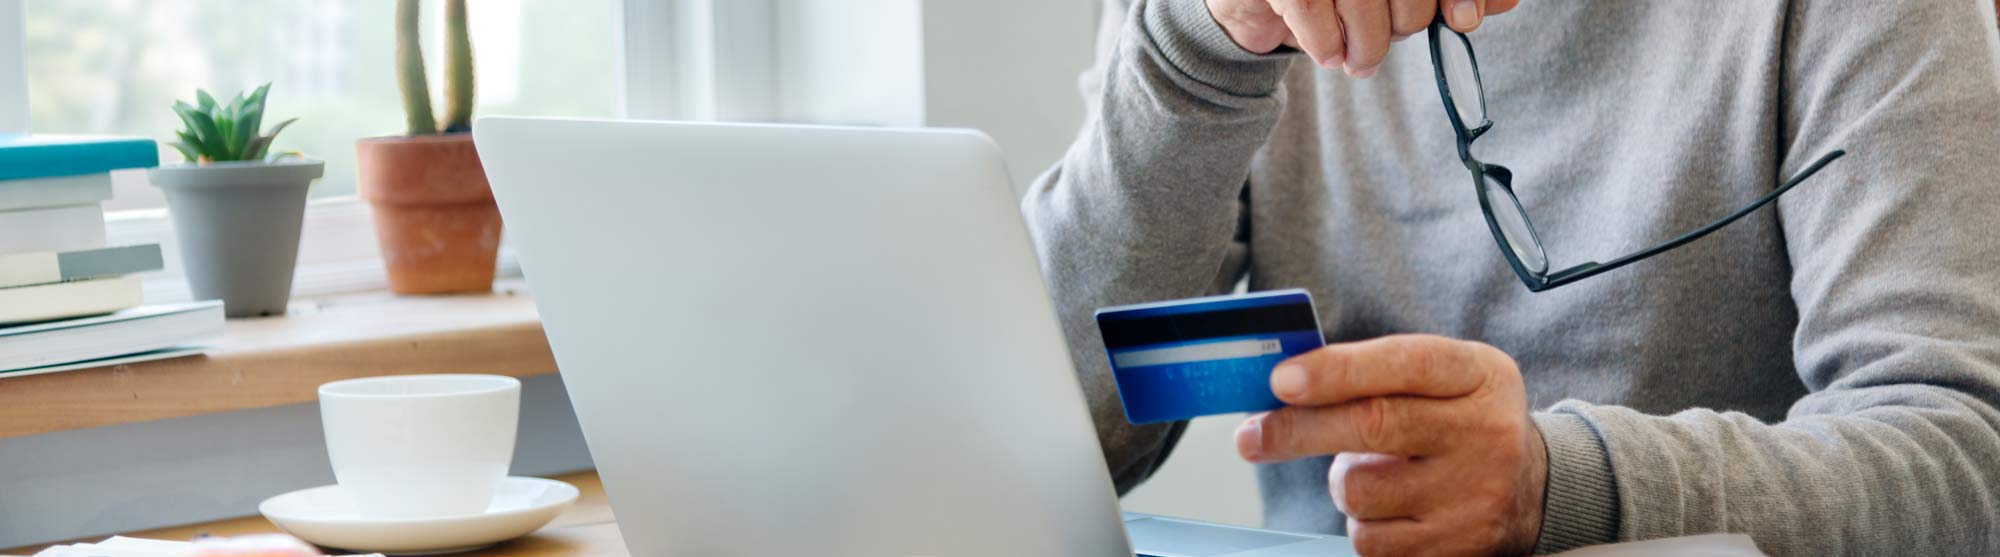 Older man using credit card for online shopping